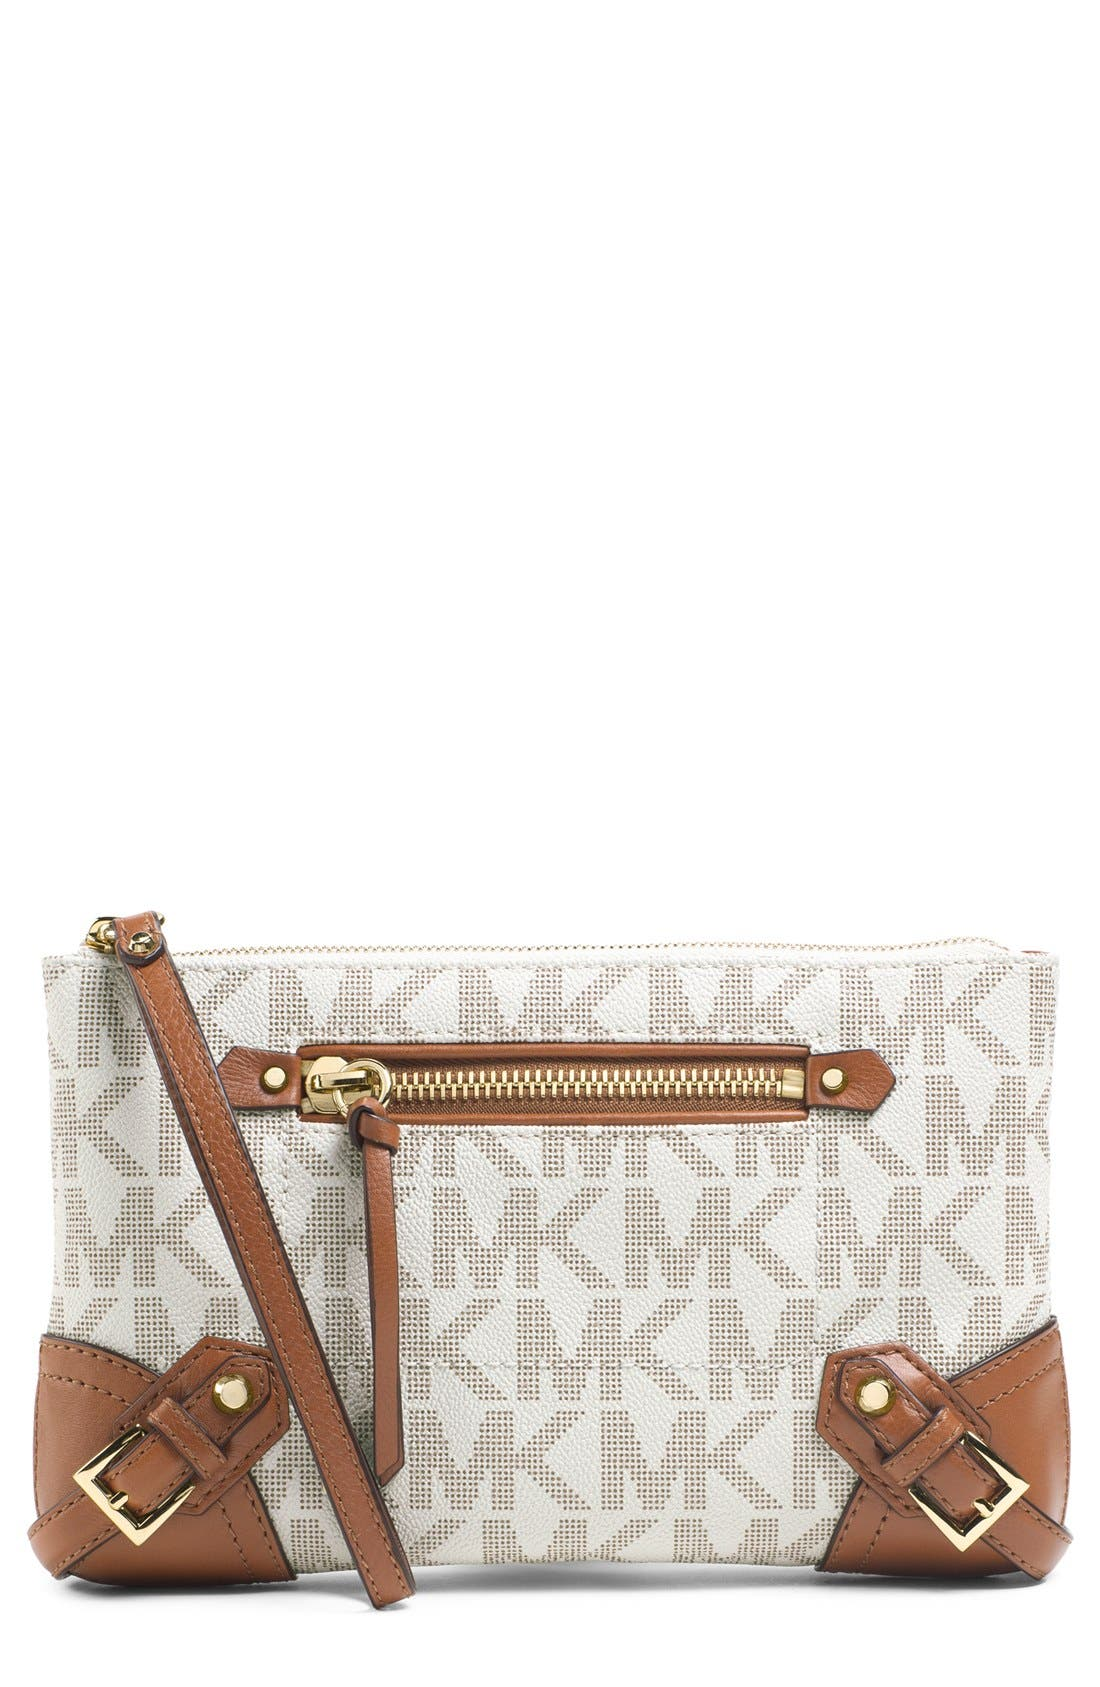 Alternate Image 1 Selected - MICHAEL Michael Kors 'Large Fallon' Zip Clutch